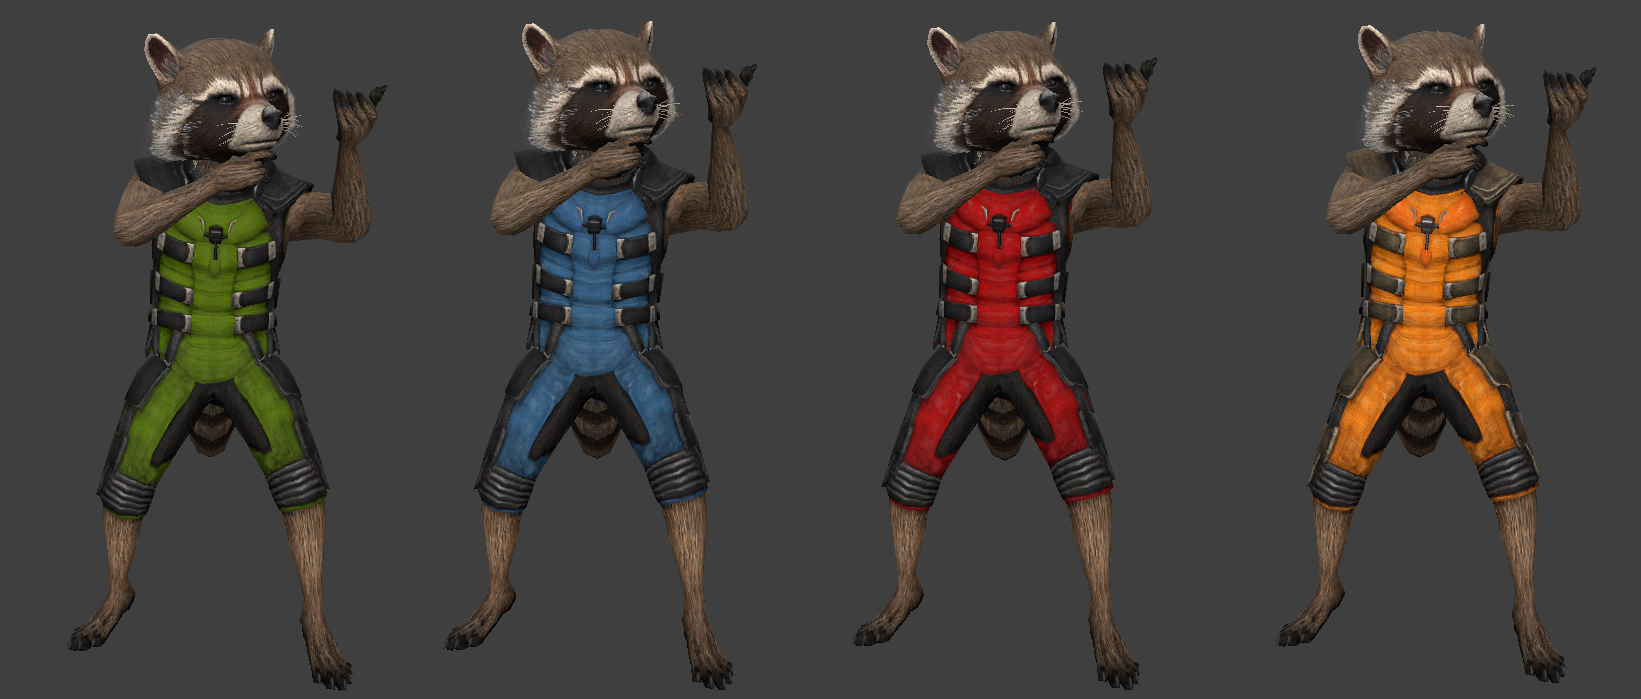 Rocket Raccoon Pack (Green, Blue, Red, Yellow)